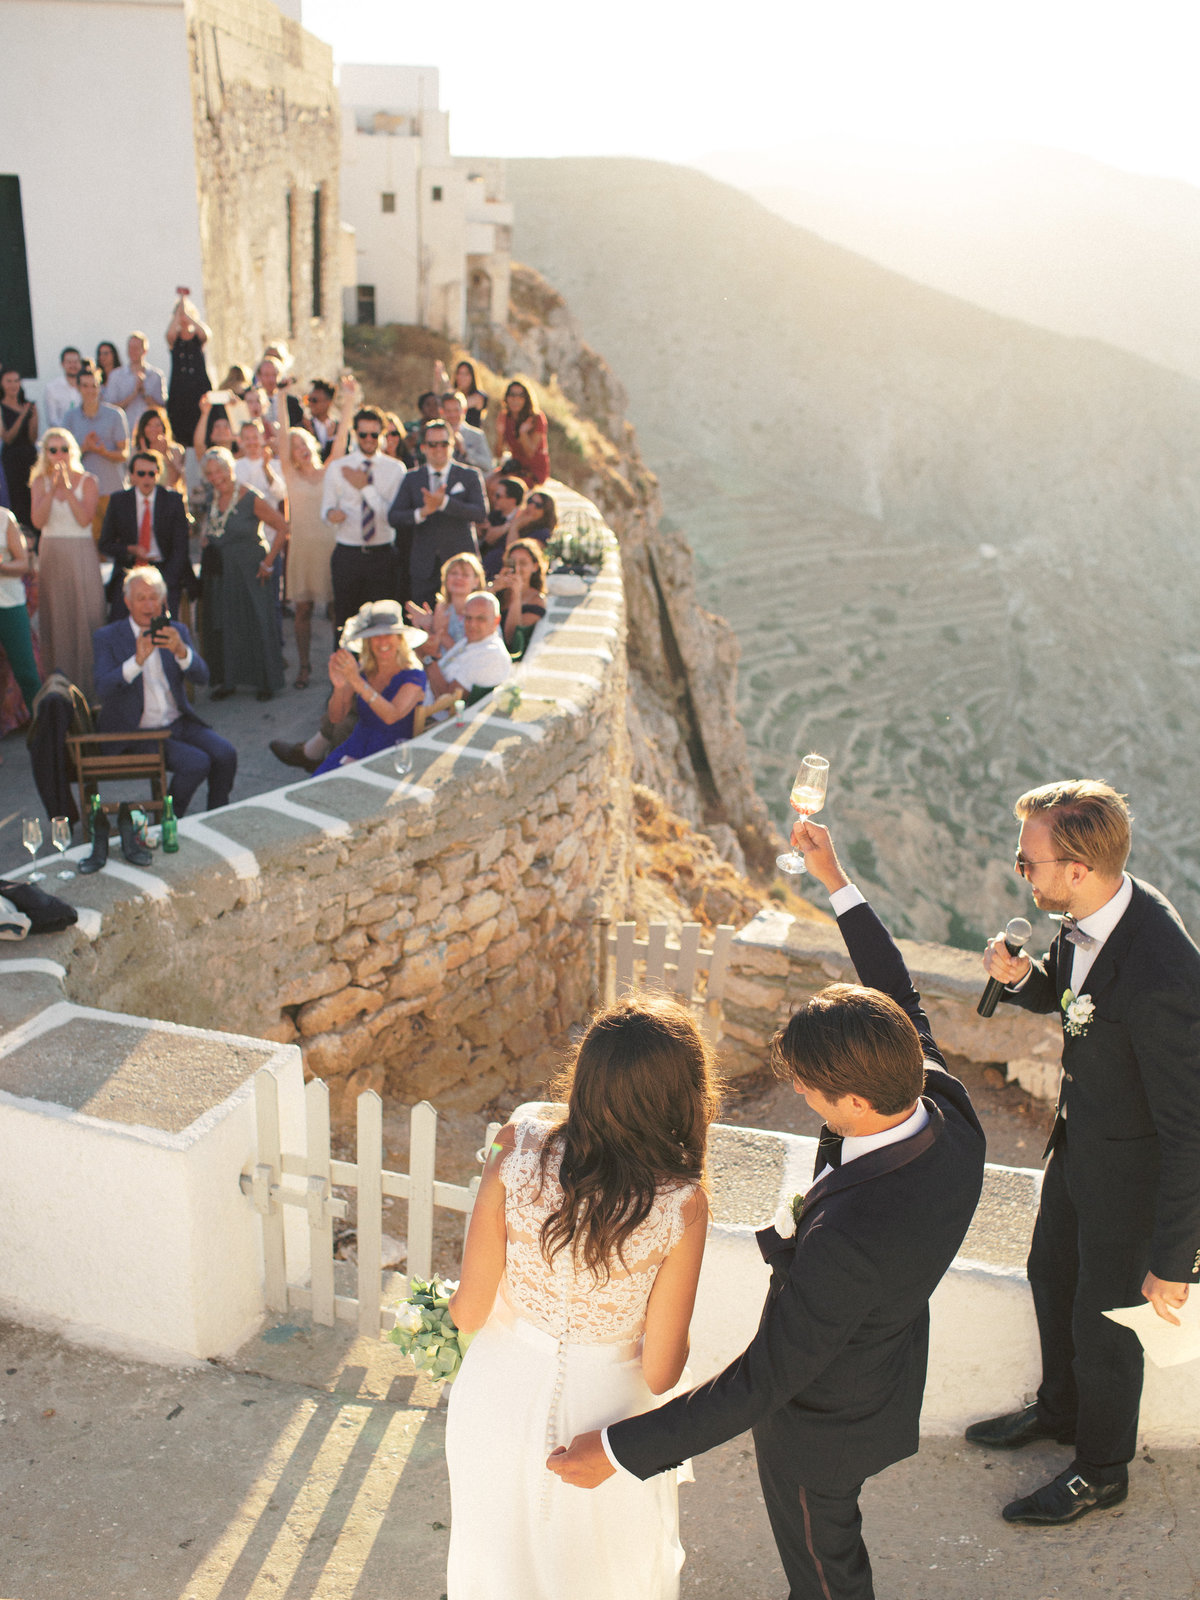 Folegandros-fine-art-wedding-photography-on-film-by-Kostis-Mouselimis-59